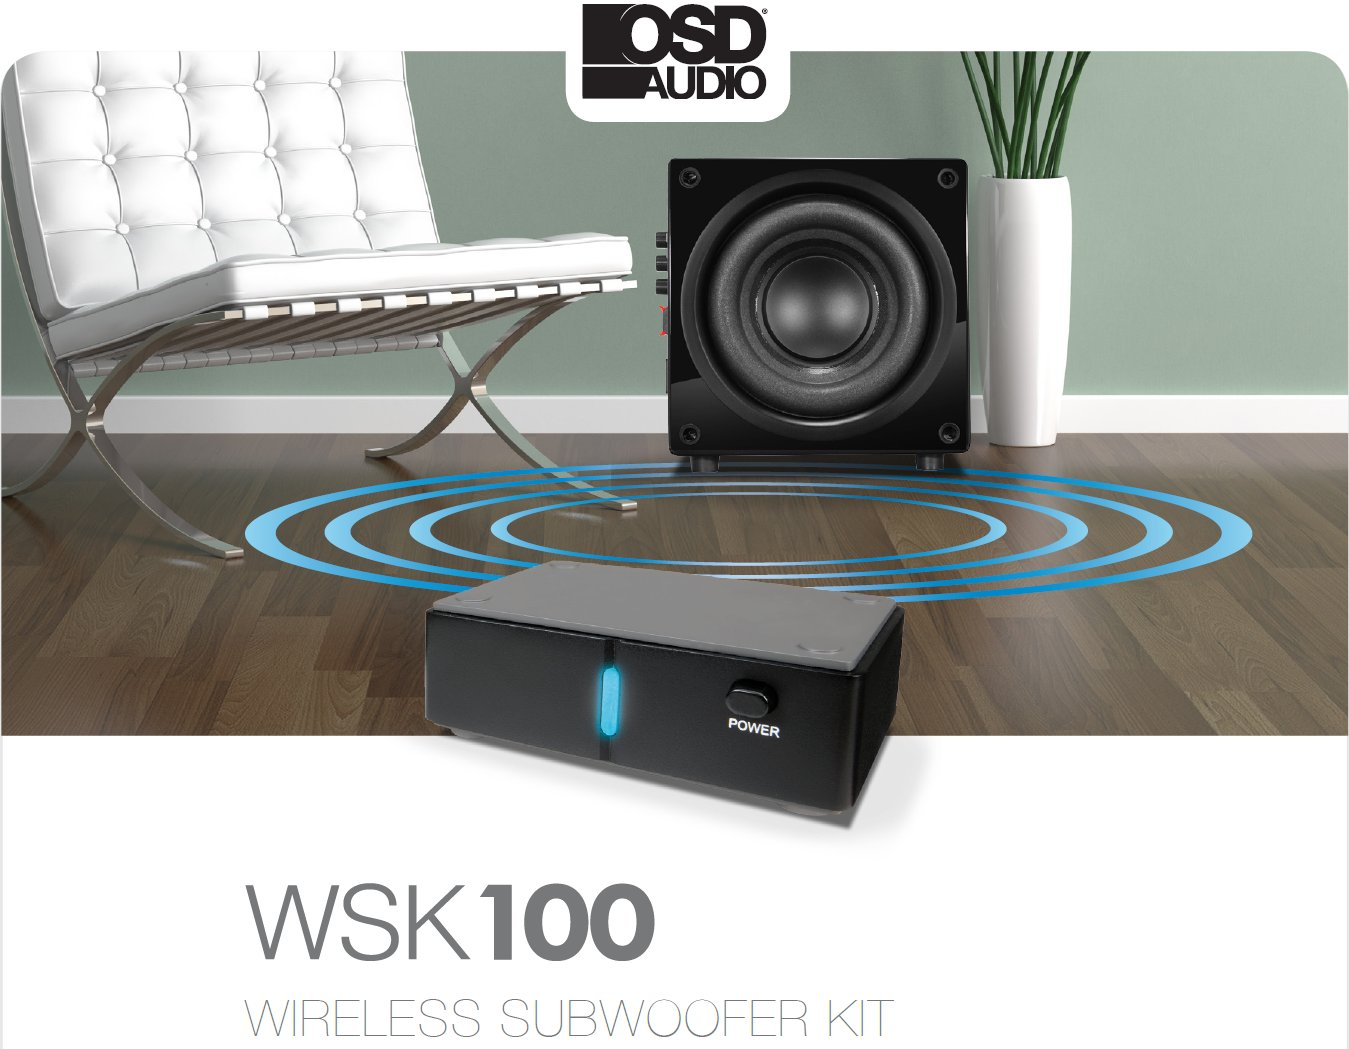 OSD Audio Wireless Subwoofer and Receiver Kit - 34 Channel Transmitter - WSK100 by OSD Audio